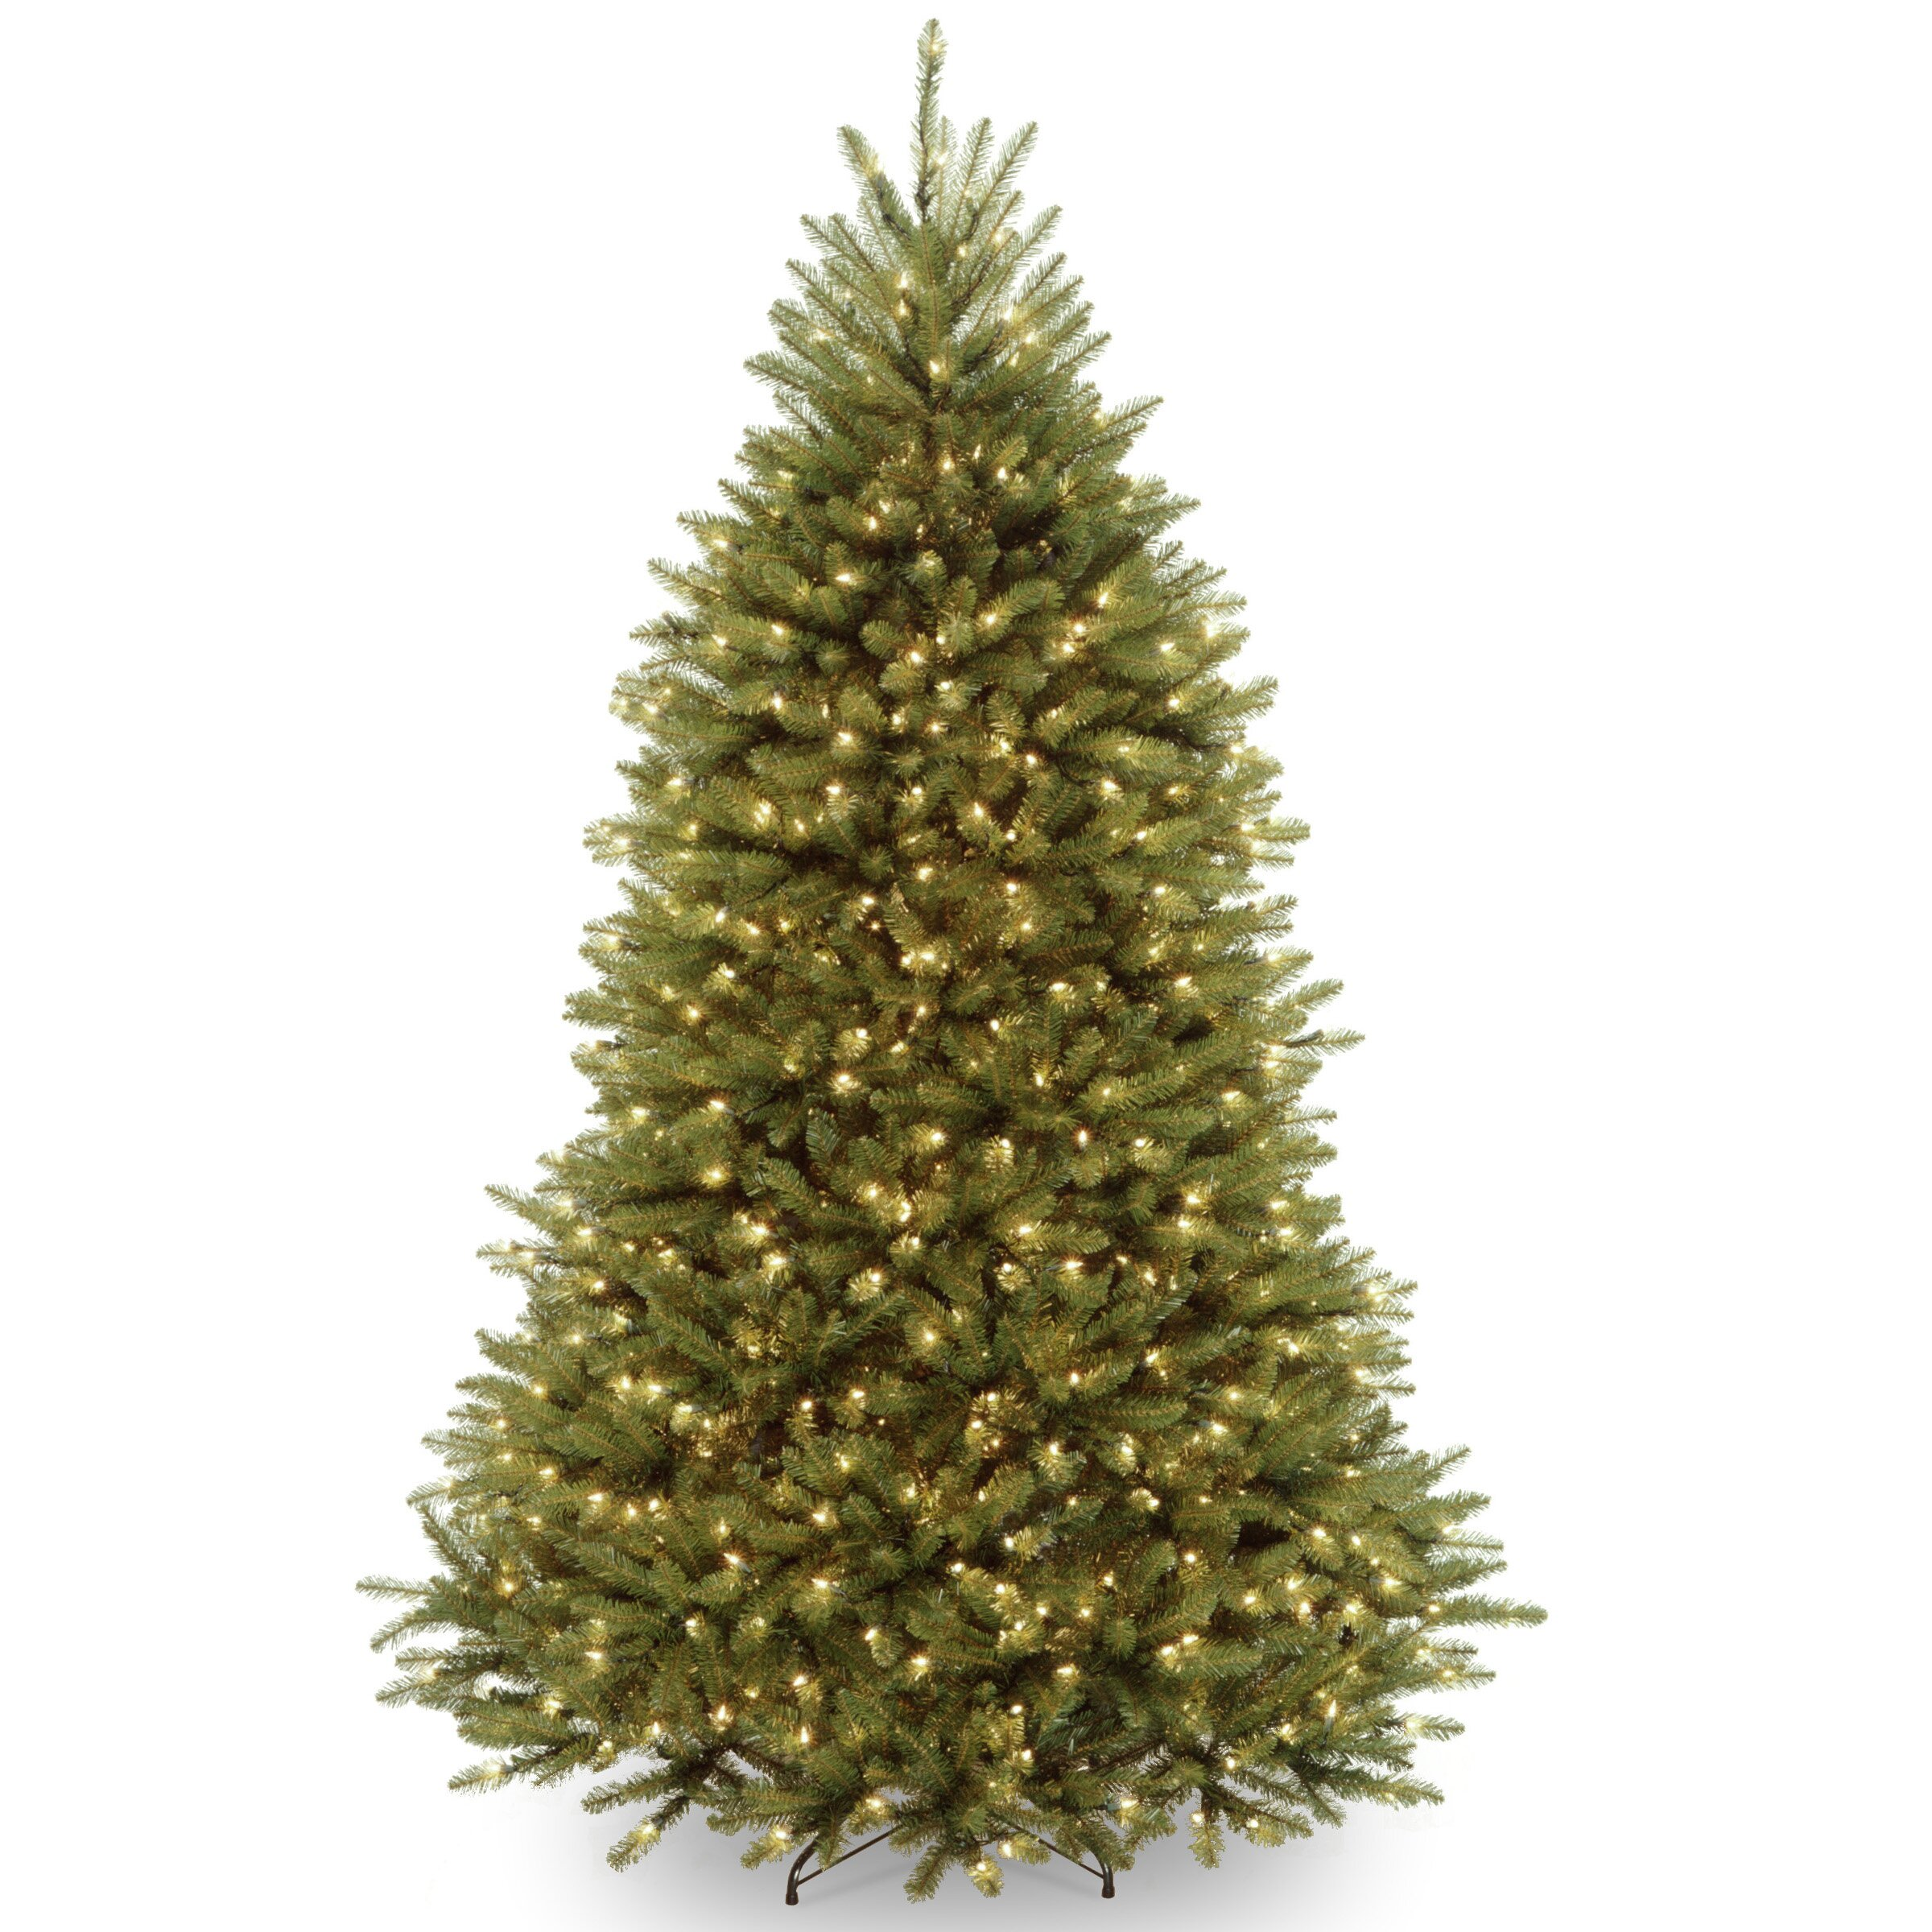 National Tree Co. Dunhill Fir 7' Hinged Green Artificial